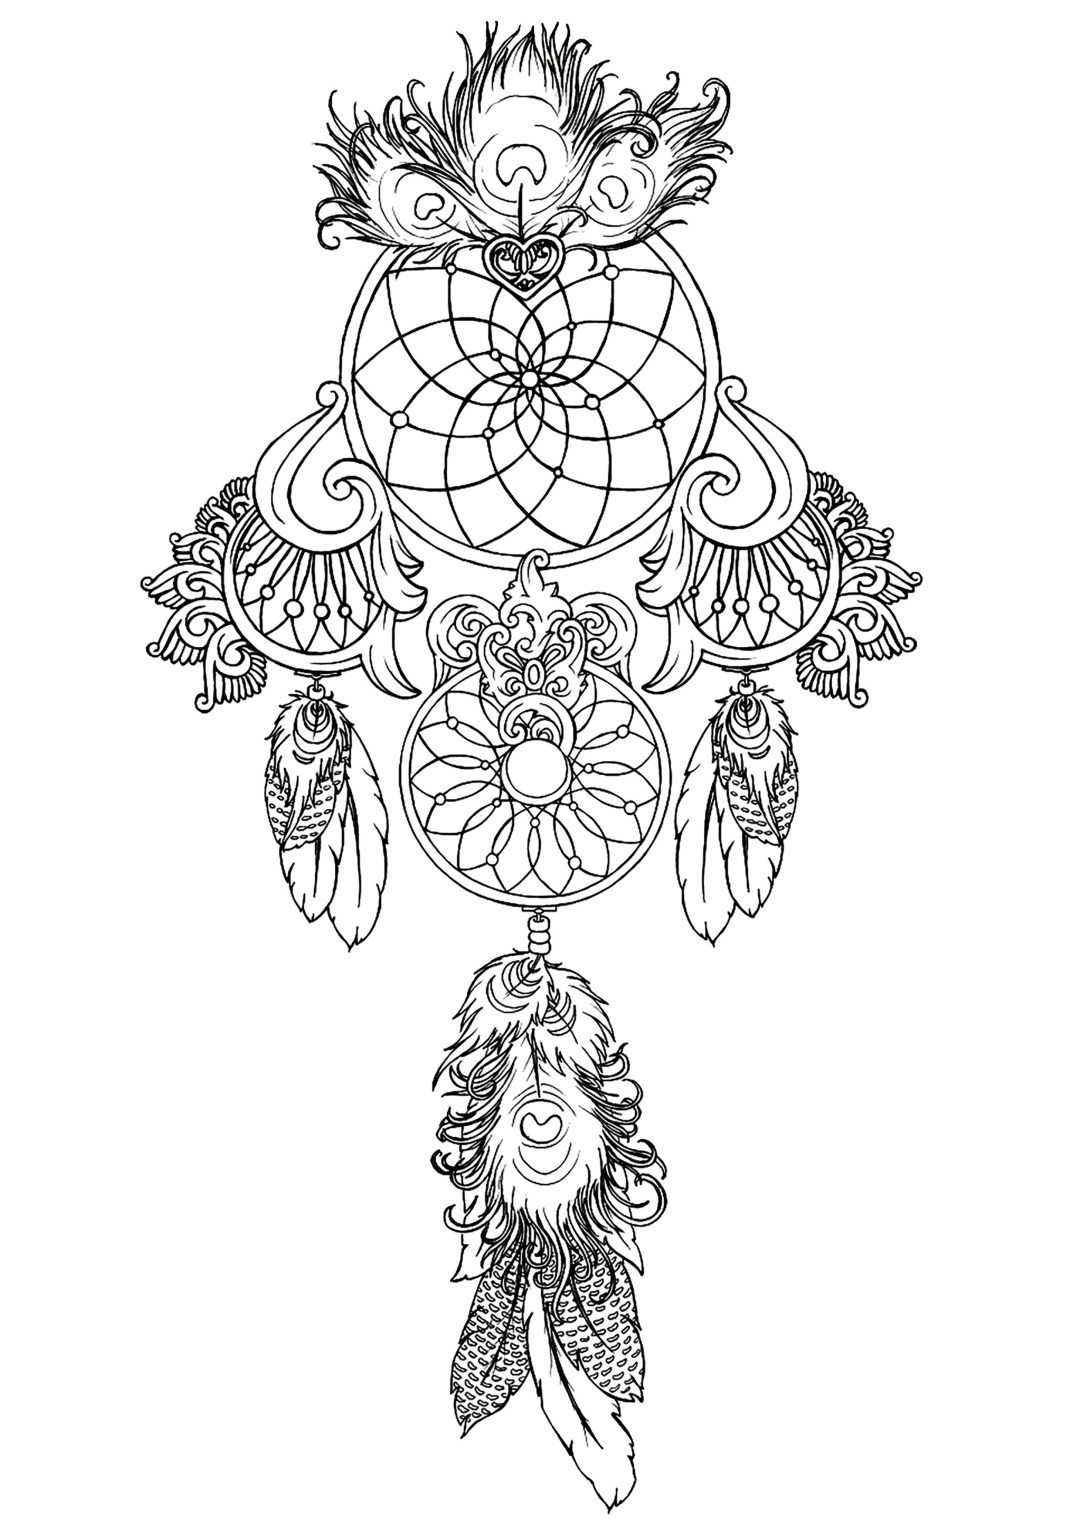 coloring games for adults video game coloring pages for adults at getdrawings free coloring for games adults